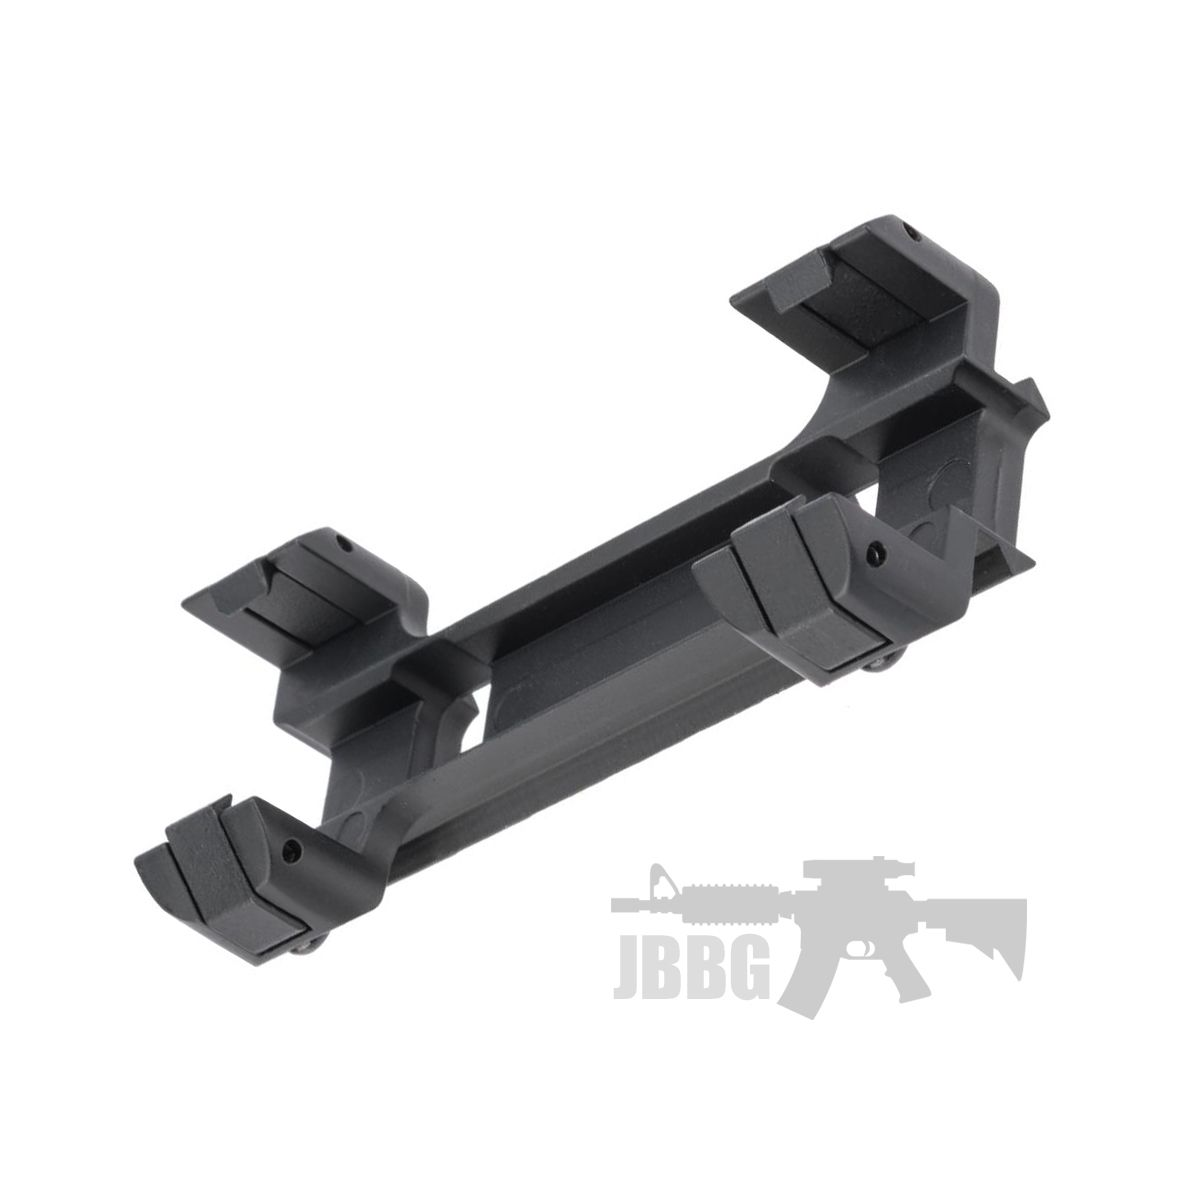 Elite Force Low Profile Claw Mount for MP5 and G3 Guns